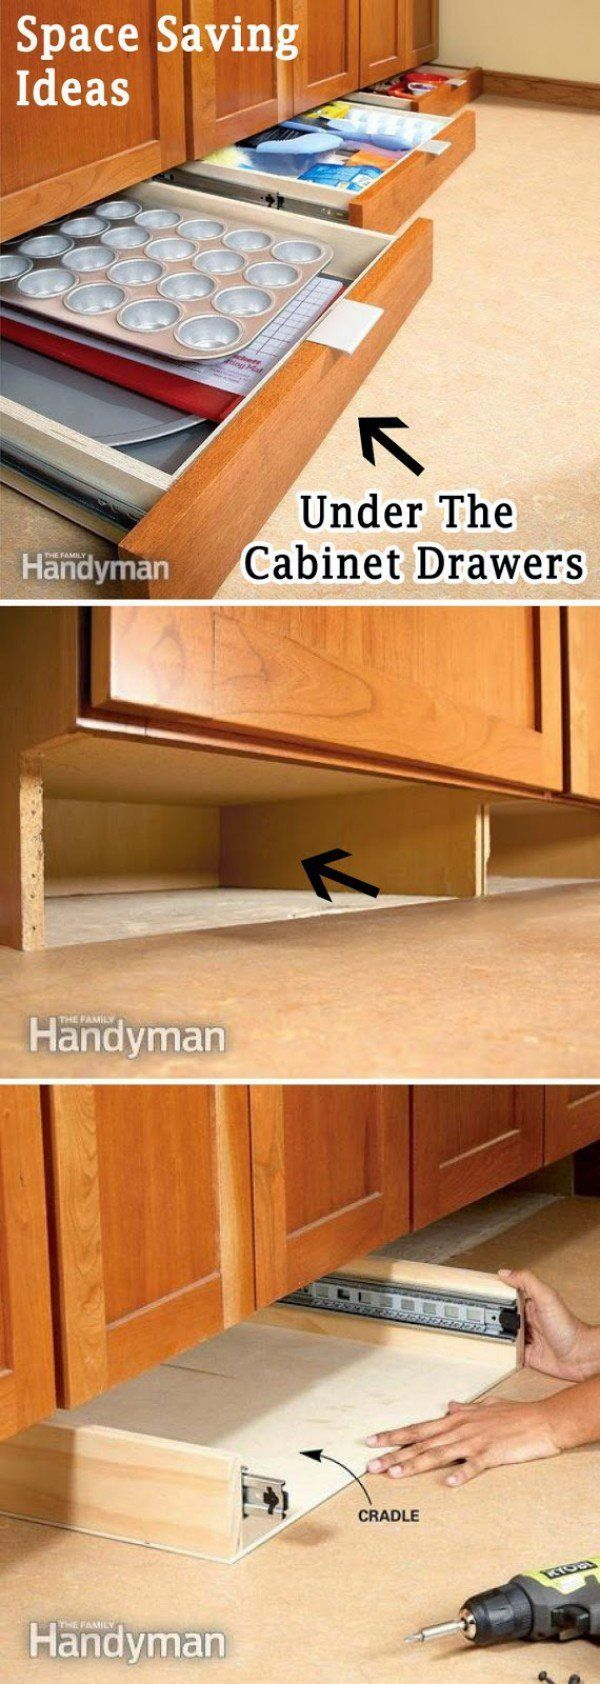 Under Kitchen Cabinet Storage Ideas best 10+ kitchen storage ideas on pinterest | kitchen sink